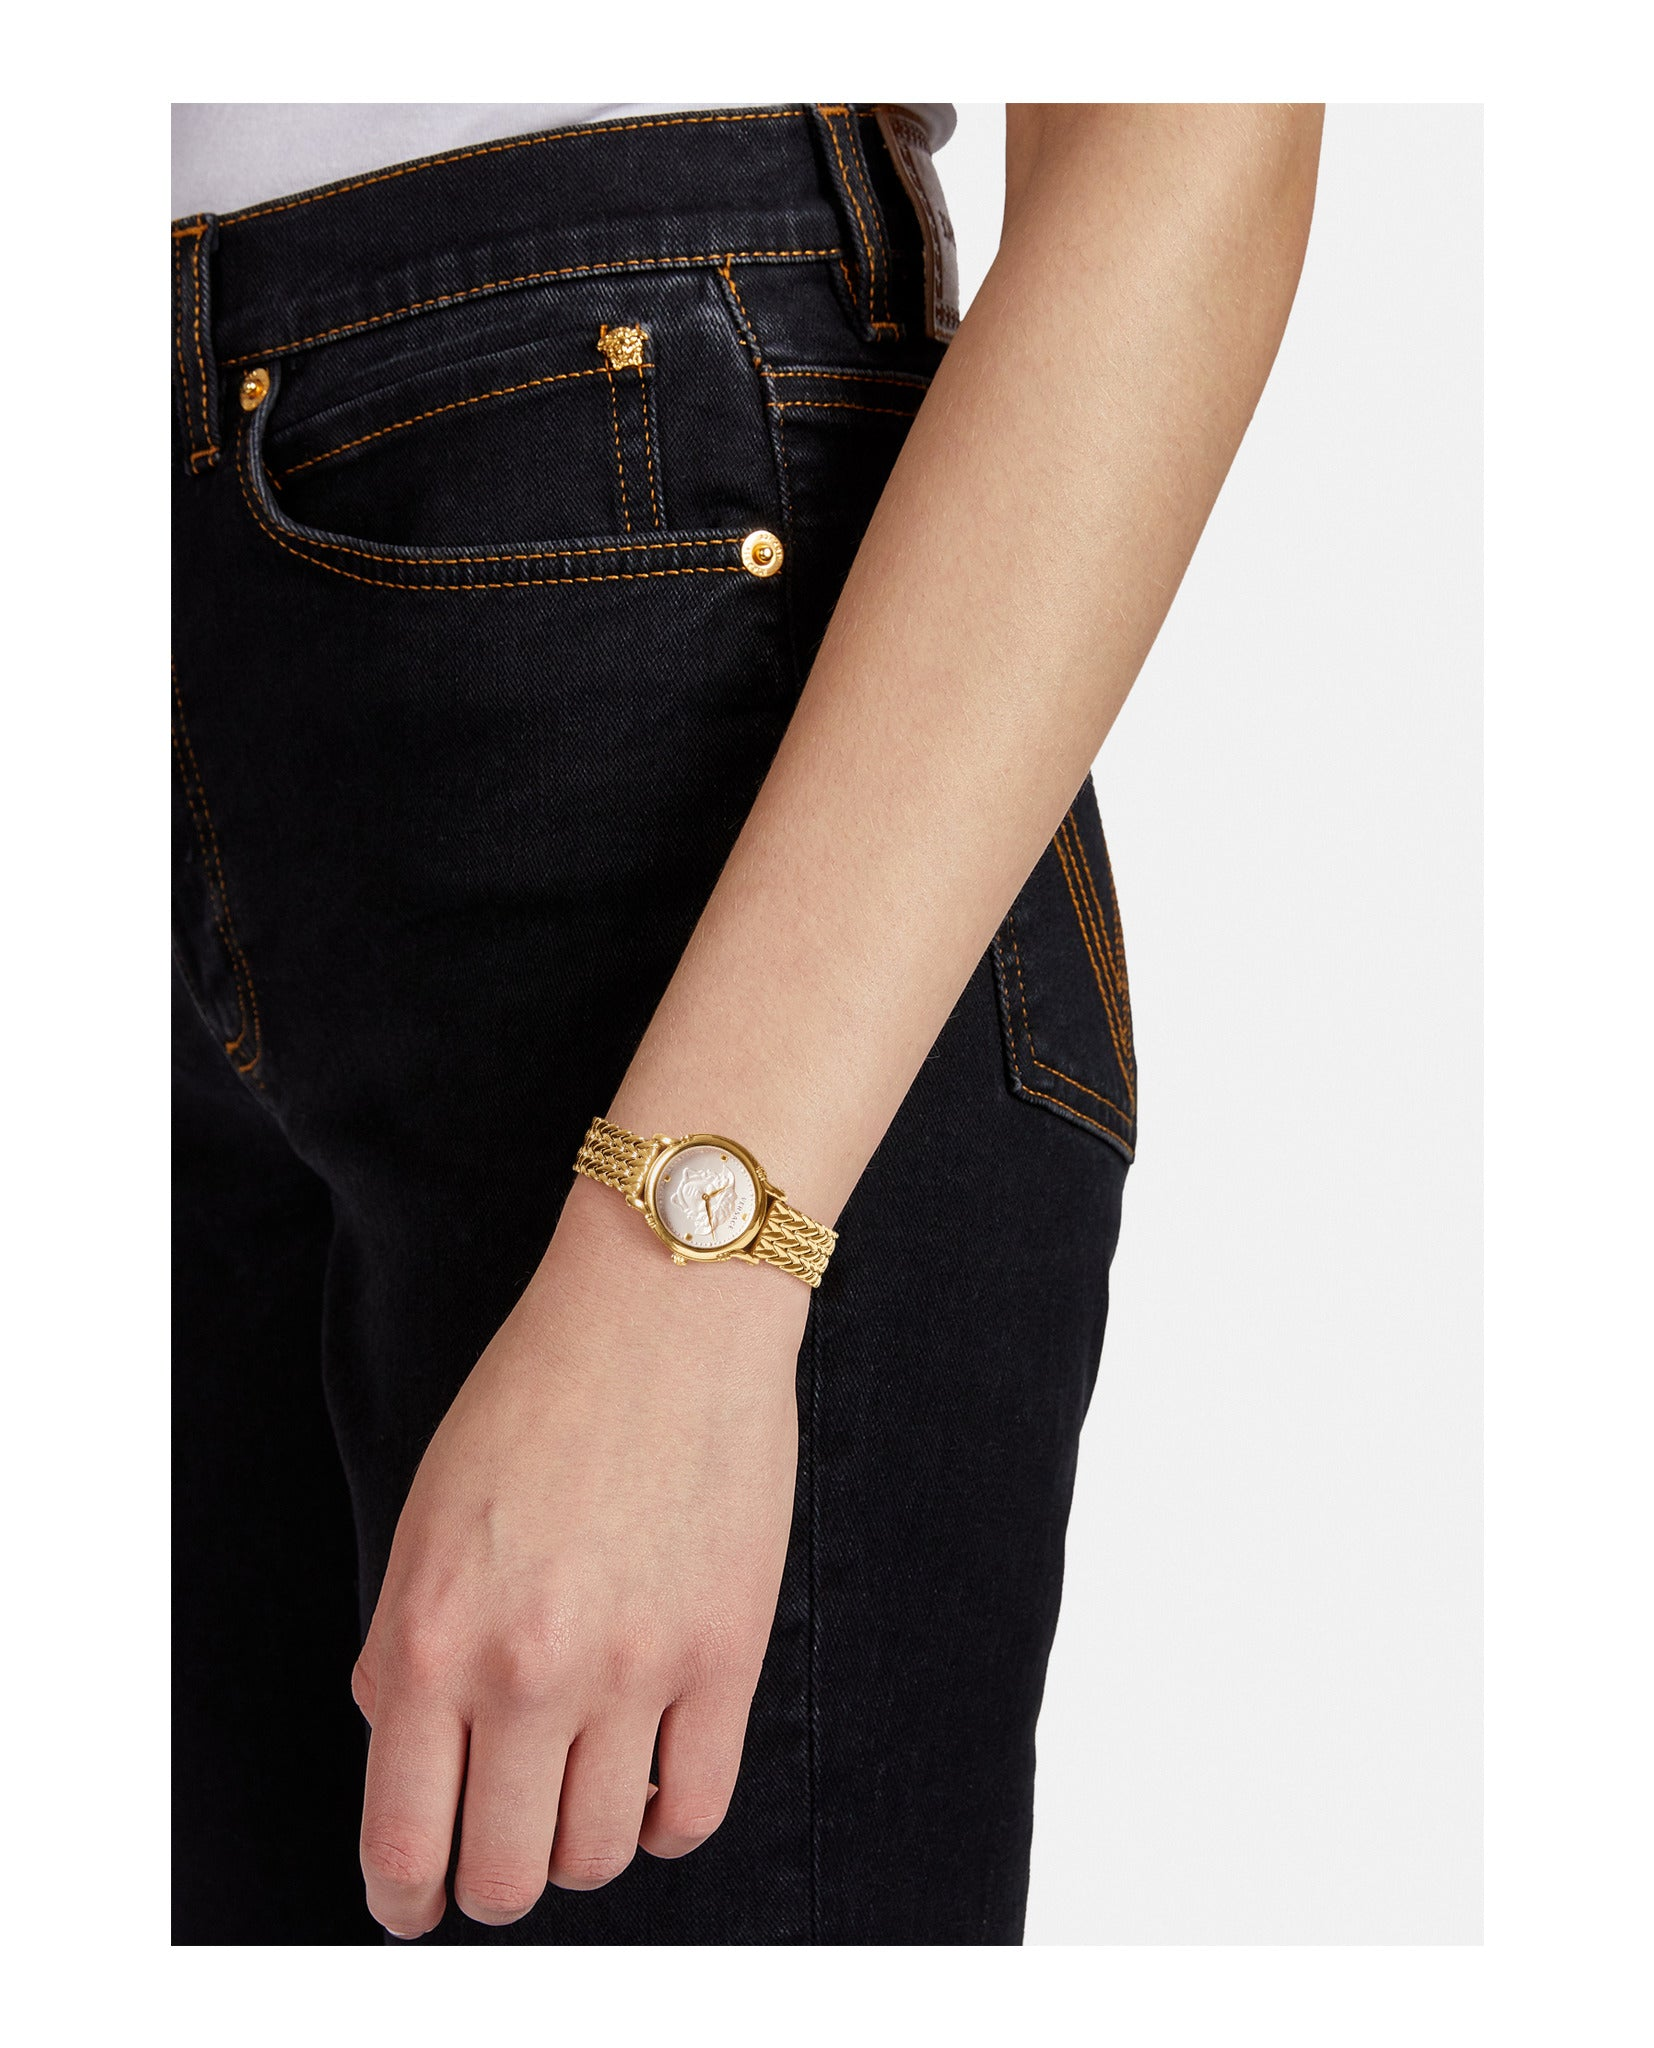 Safety Pin Bracelet Watch